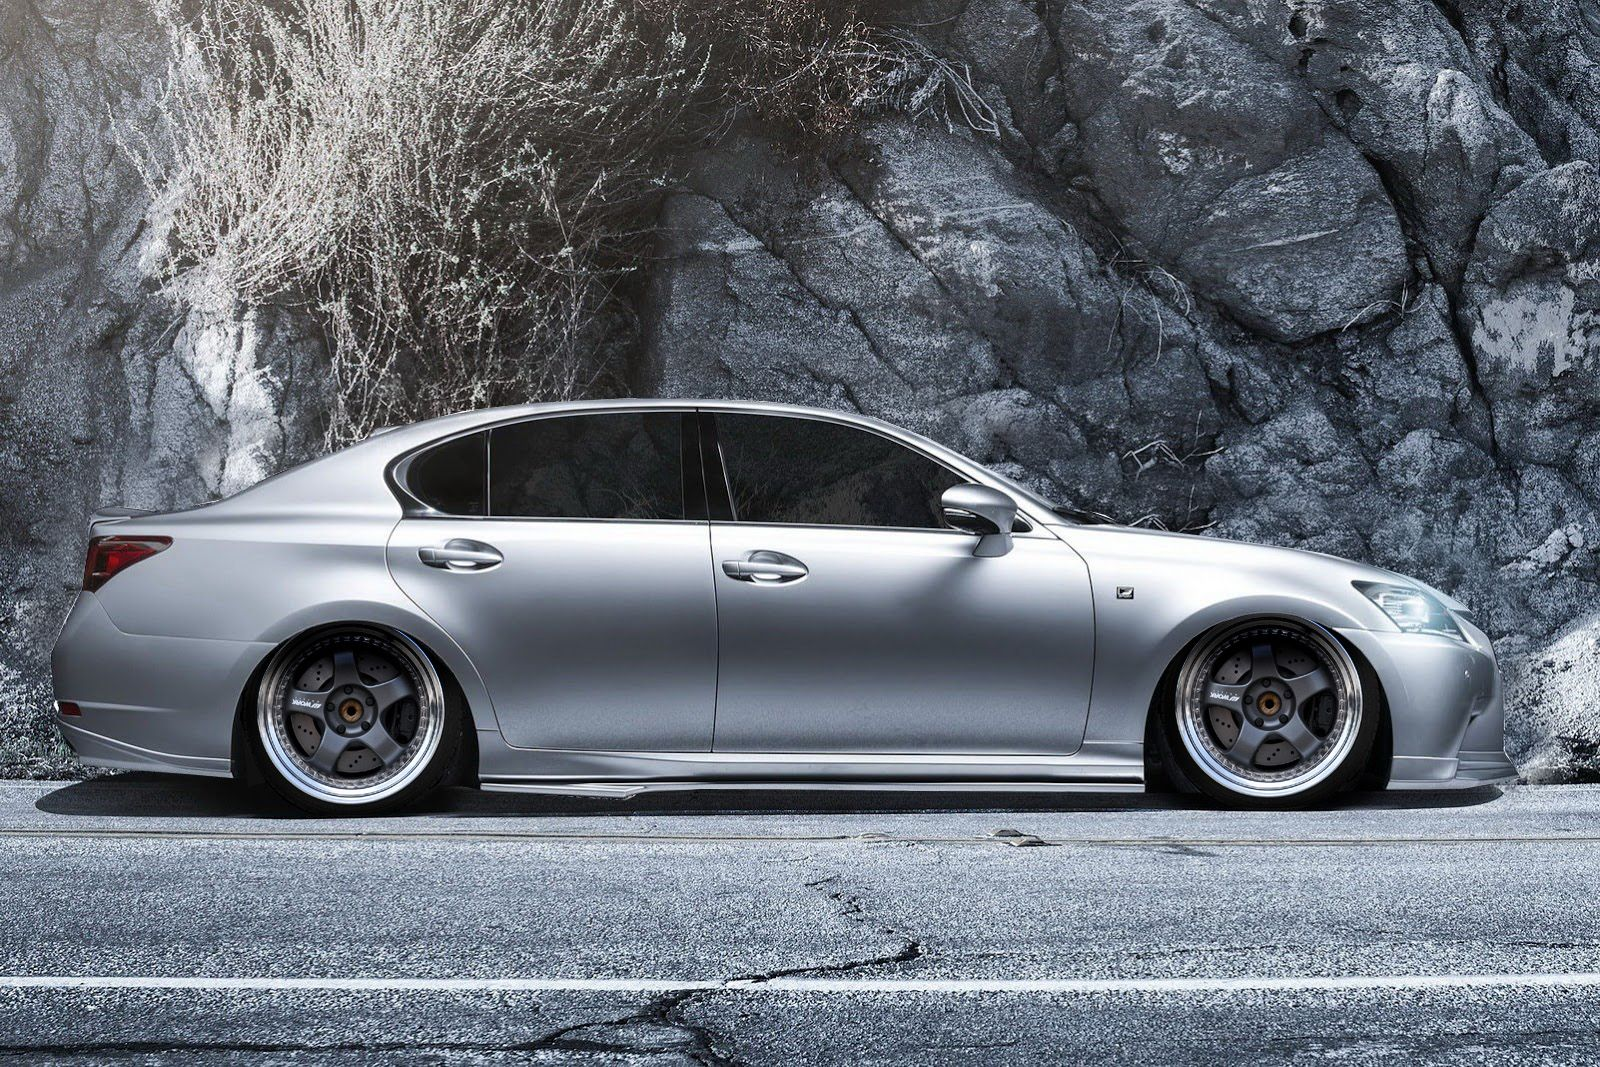 Lexus GS350 Fsport slammed on Work Meister 3pc wheels